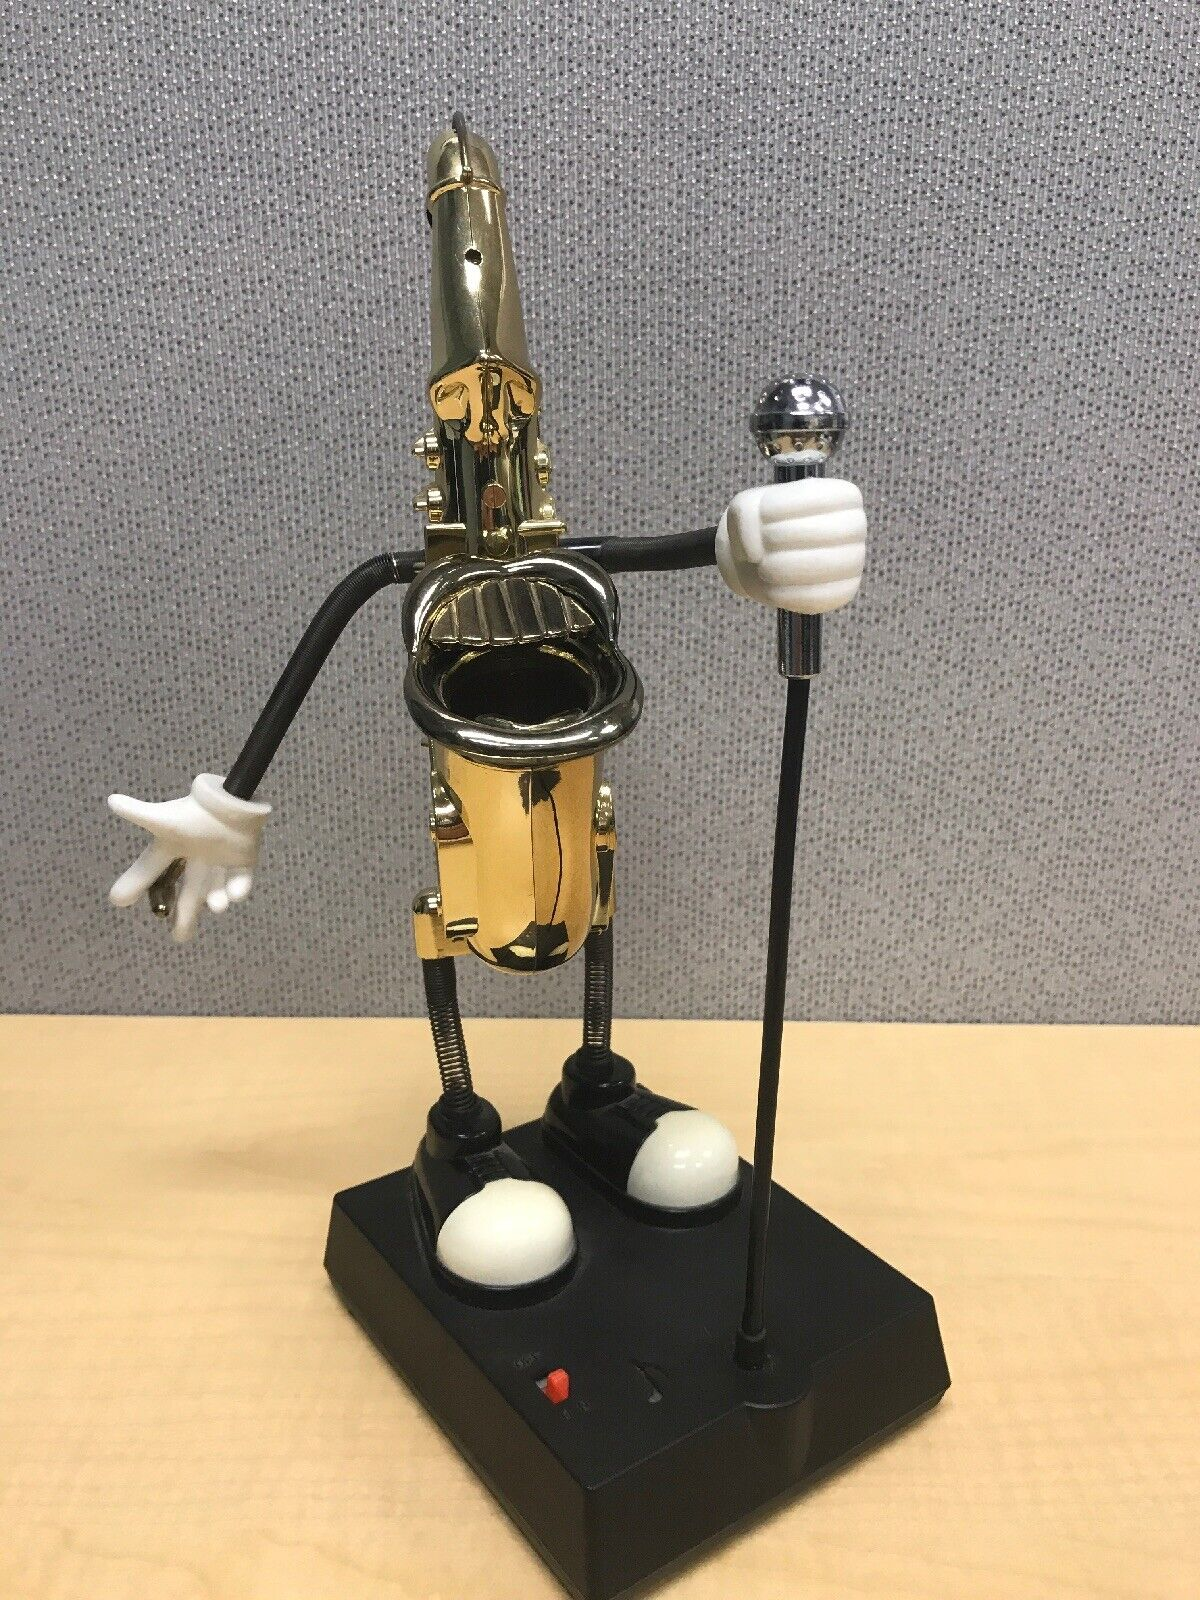 Dancing gold Saxophone Figure Missing Sunglasses Sound Sensor by WACO Desk Toy